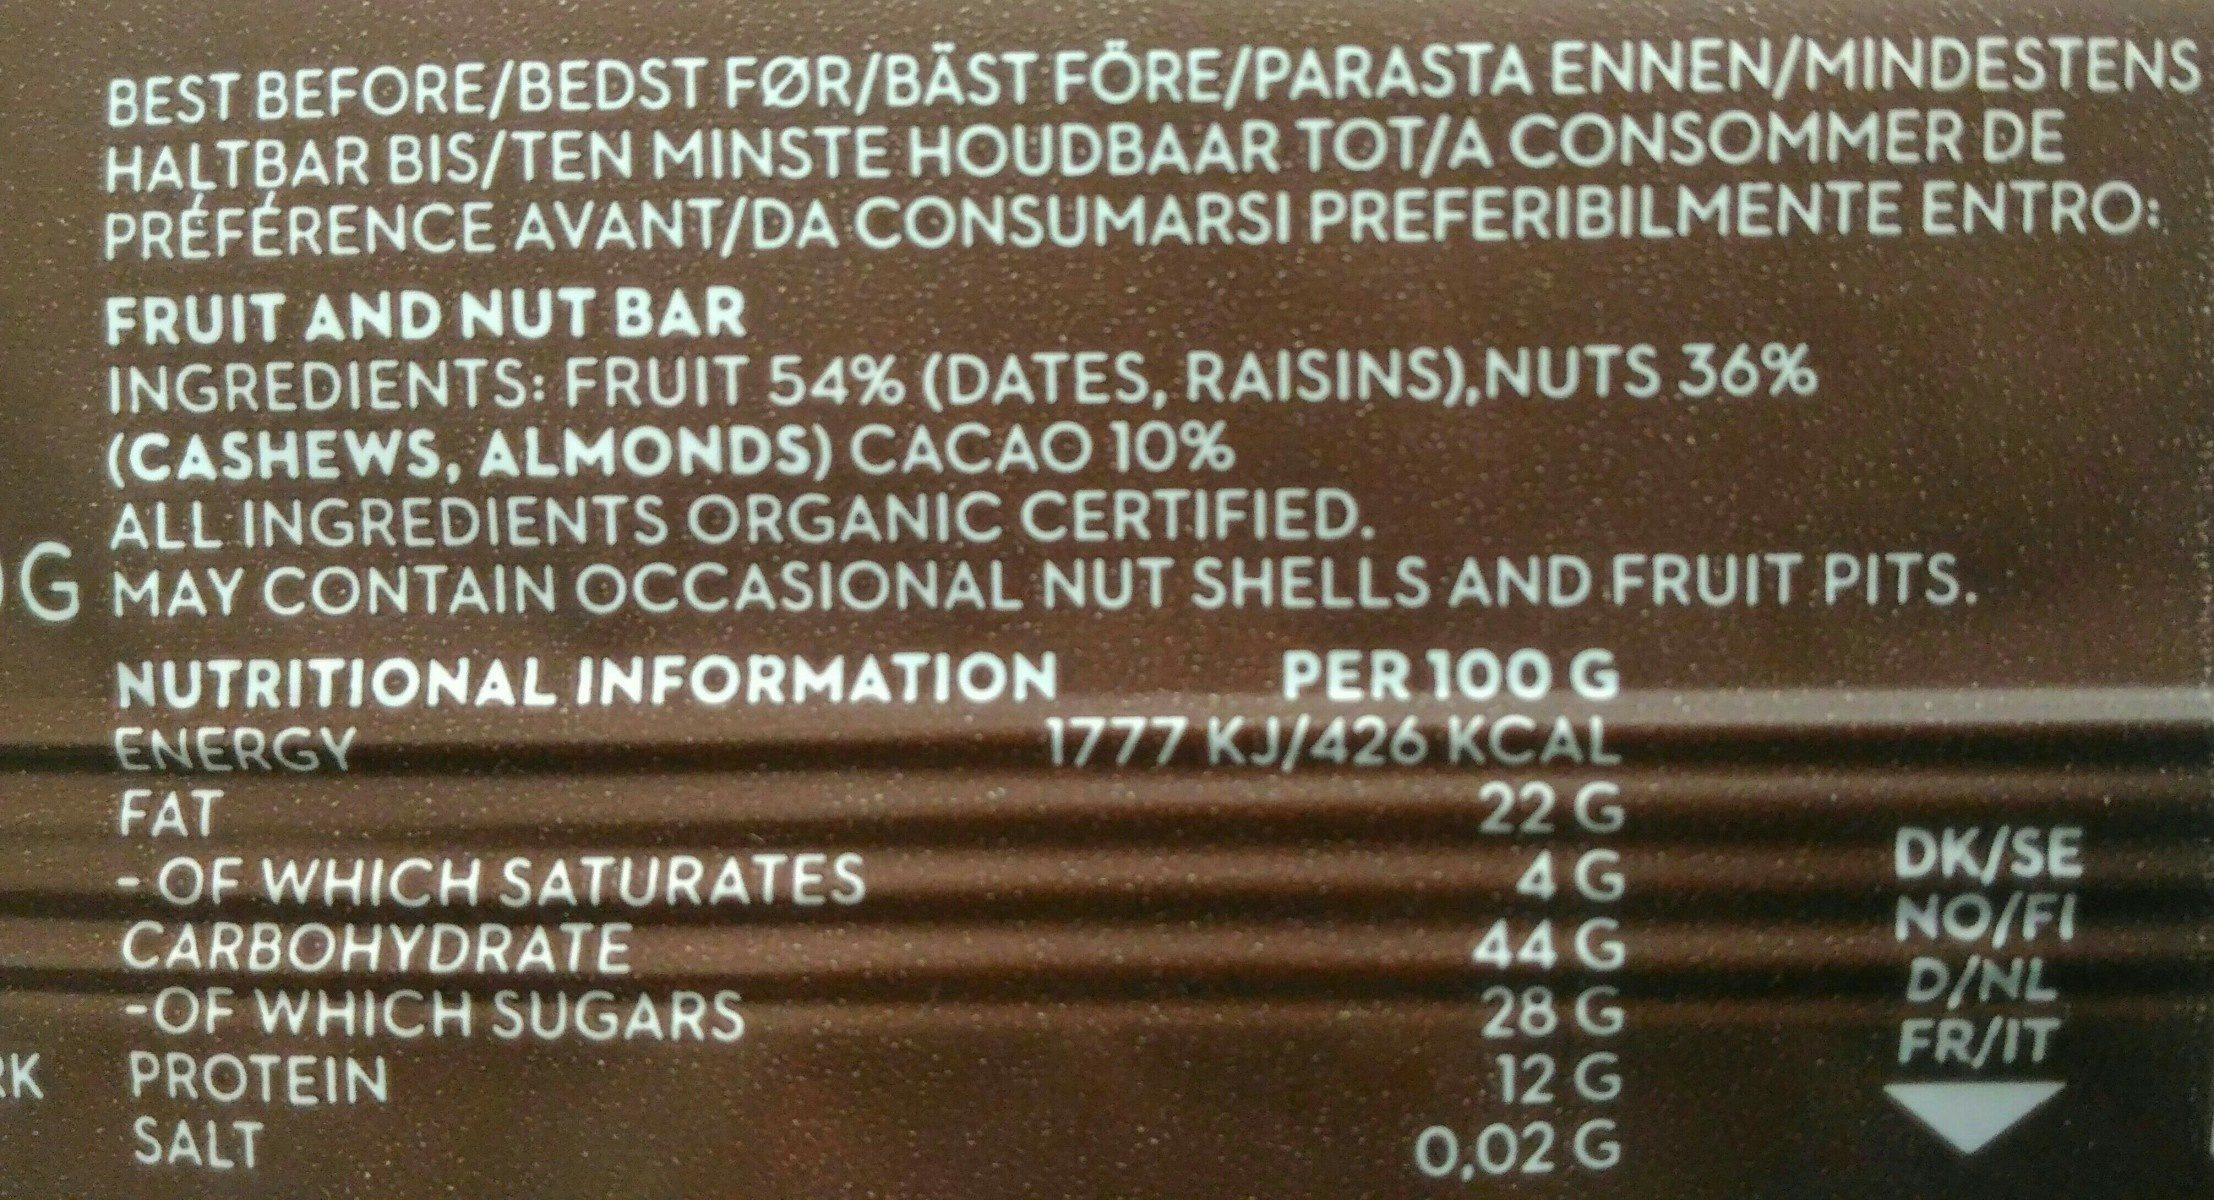 Rohkost Riegel - 12X50G - Kakao - Ingredients - fr